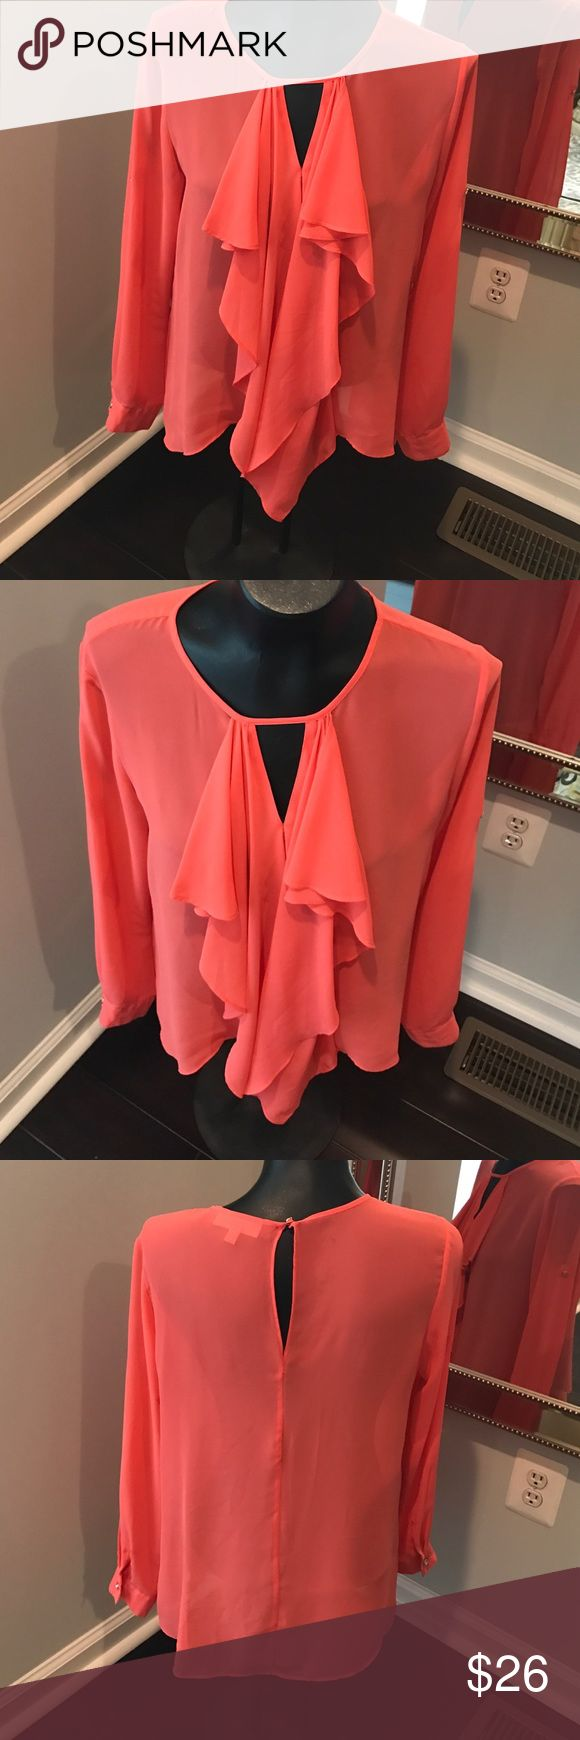 Coral blouse with front ruffles >Quick description: coral blouse with front ruffles. Sleeves can be rolled up with button tab >Color: coral  >Condition excellent ♦️Make offer through the Offer Button♦️As I will only be accepting reasonable offers through the offer button.  Please ask any questions before buying as all sales final.  Or if you prefer to bundle to pay one shipping charge. 20% off two items 30% off 3 items or more. 🚫No Trades or 🚫PayPal accepted😃 ALL ITEMS COME FROM SMOKE…